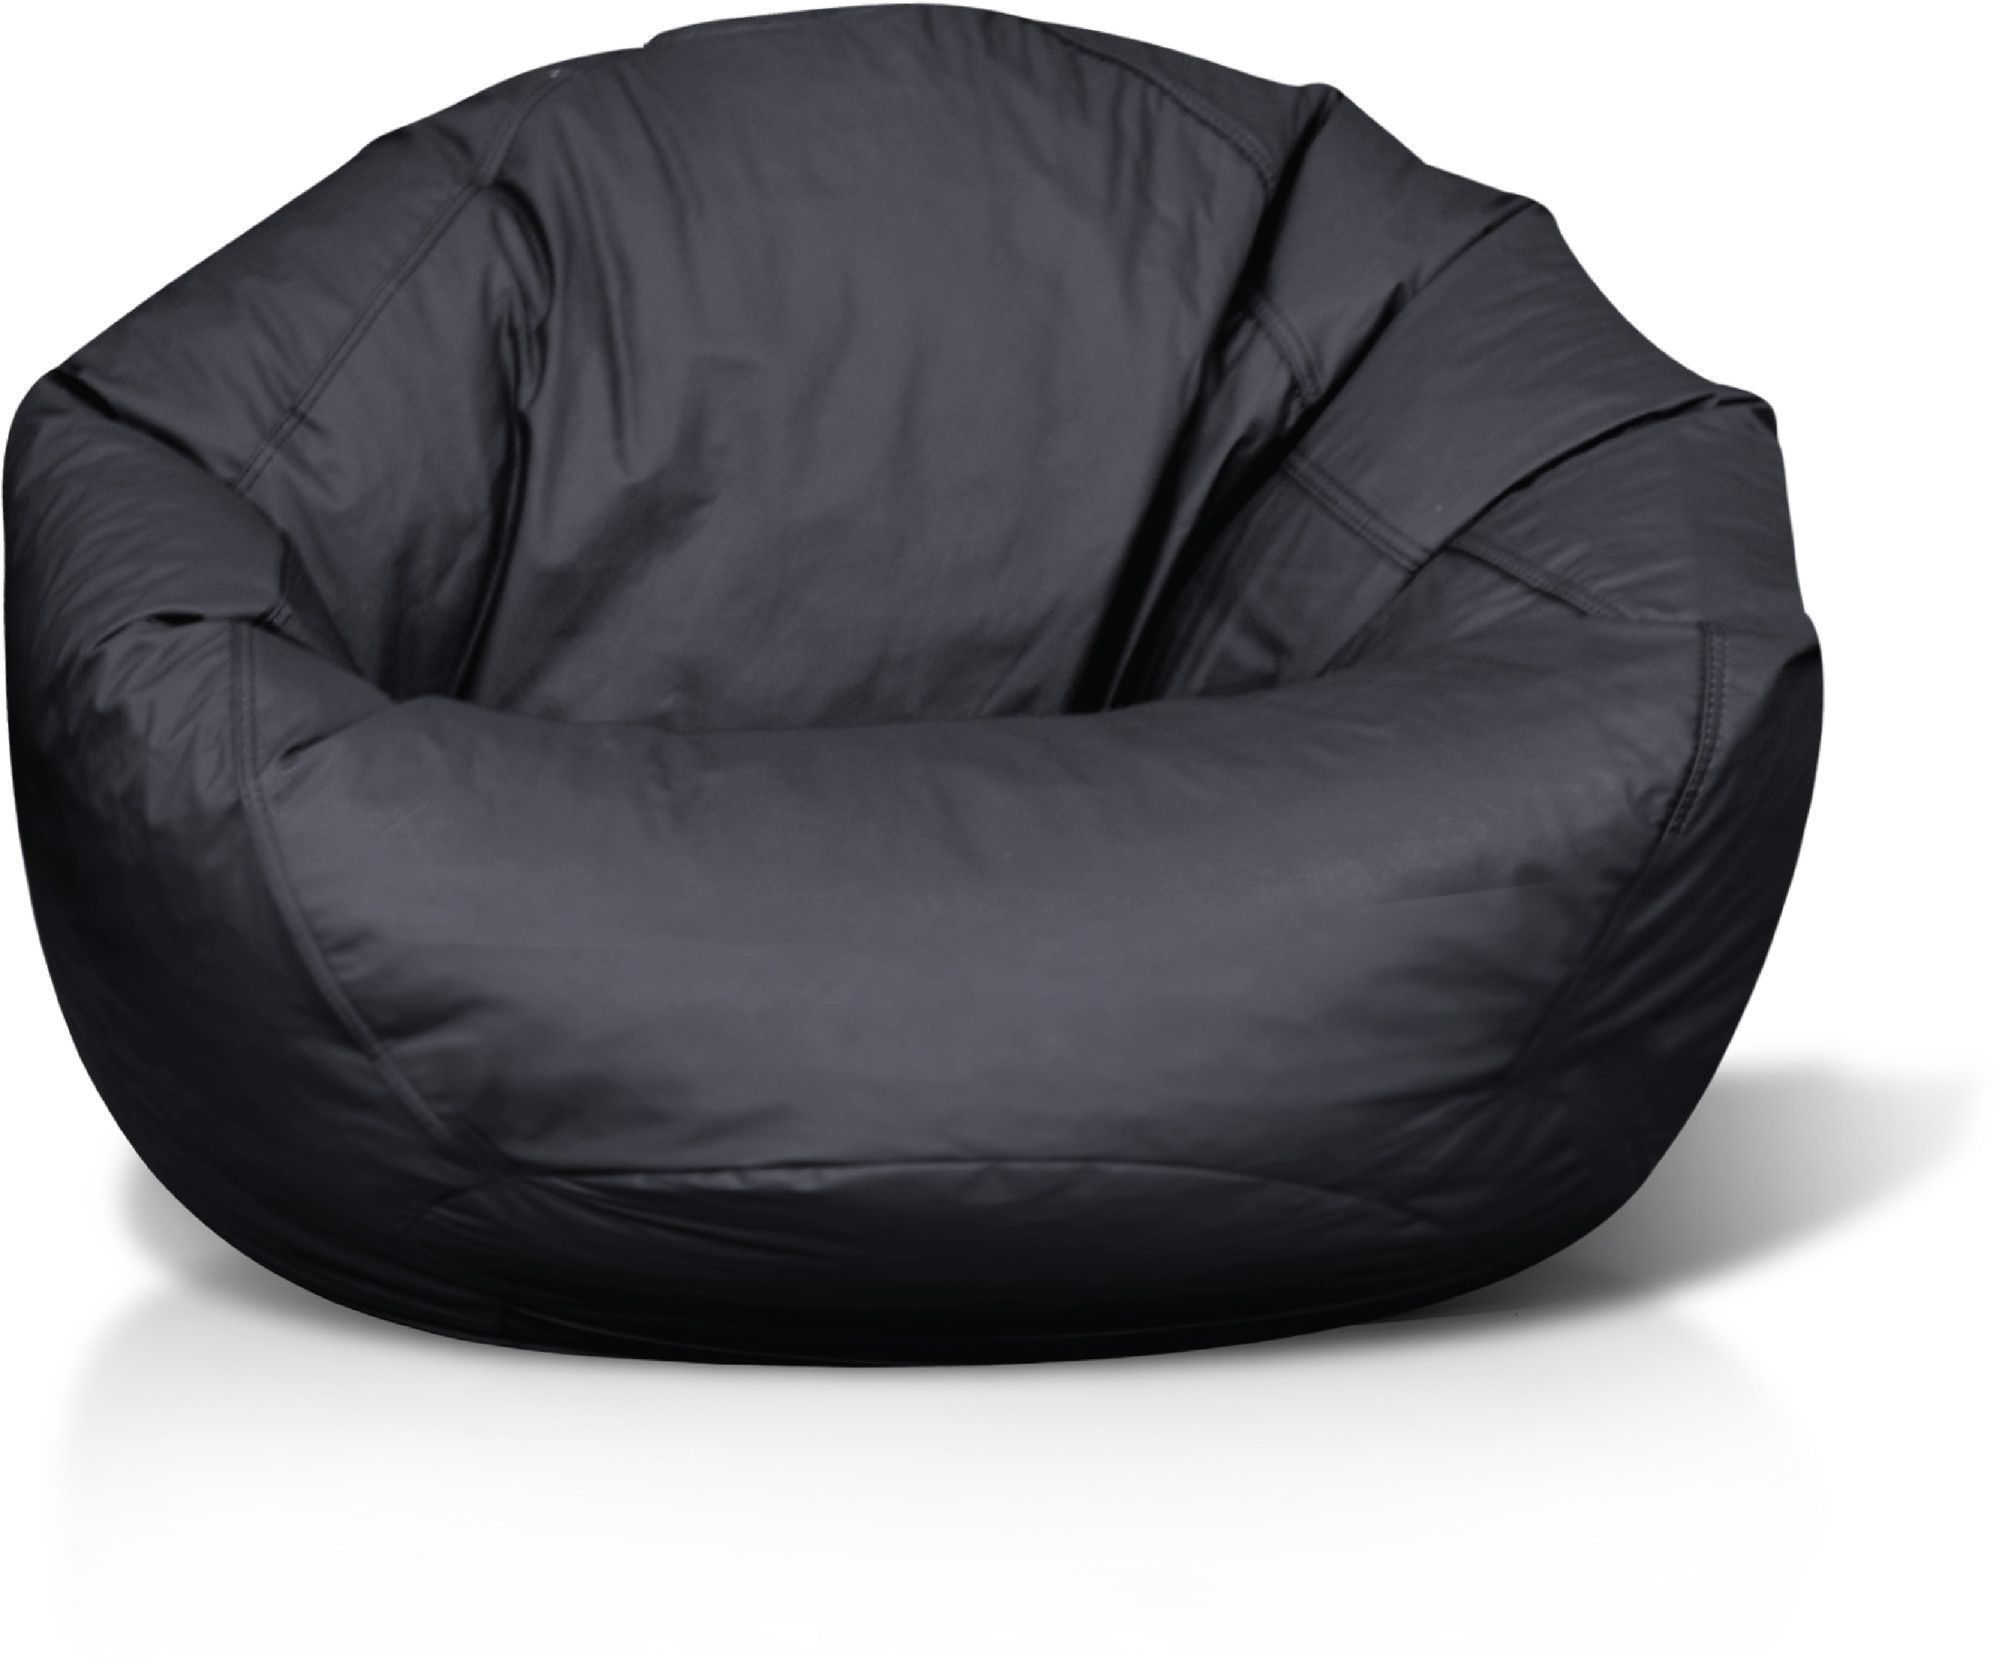 Beau Jordan Manufacturing Classic Bean Bag Chair U0026 Reviews | Wayfair